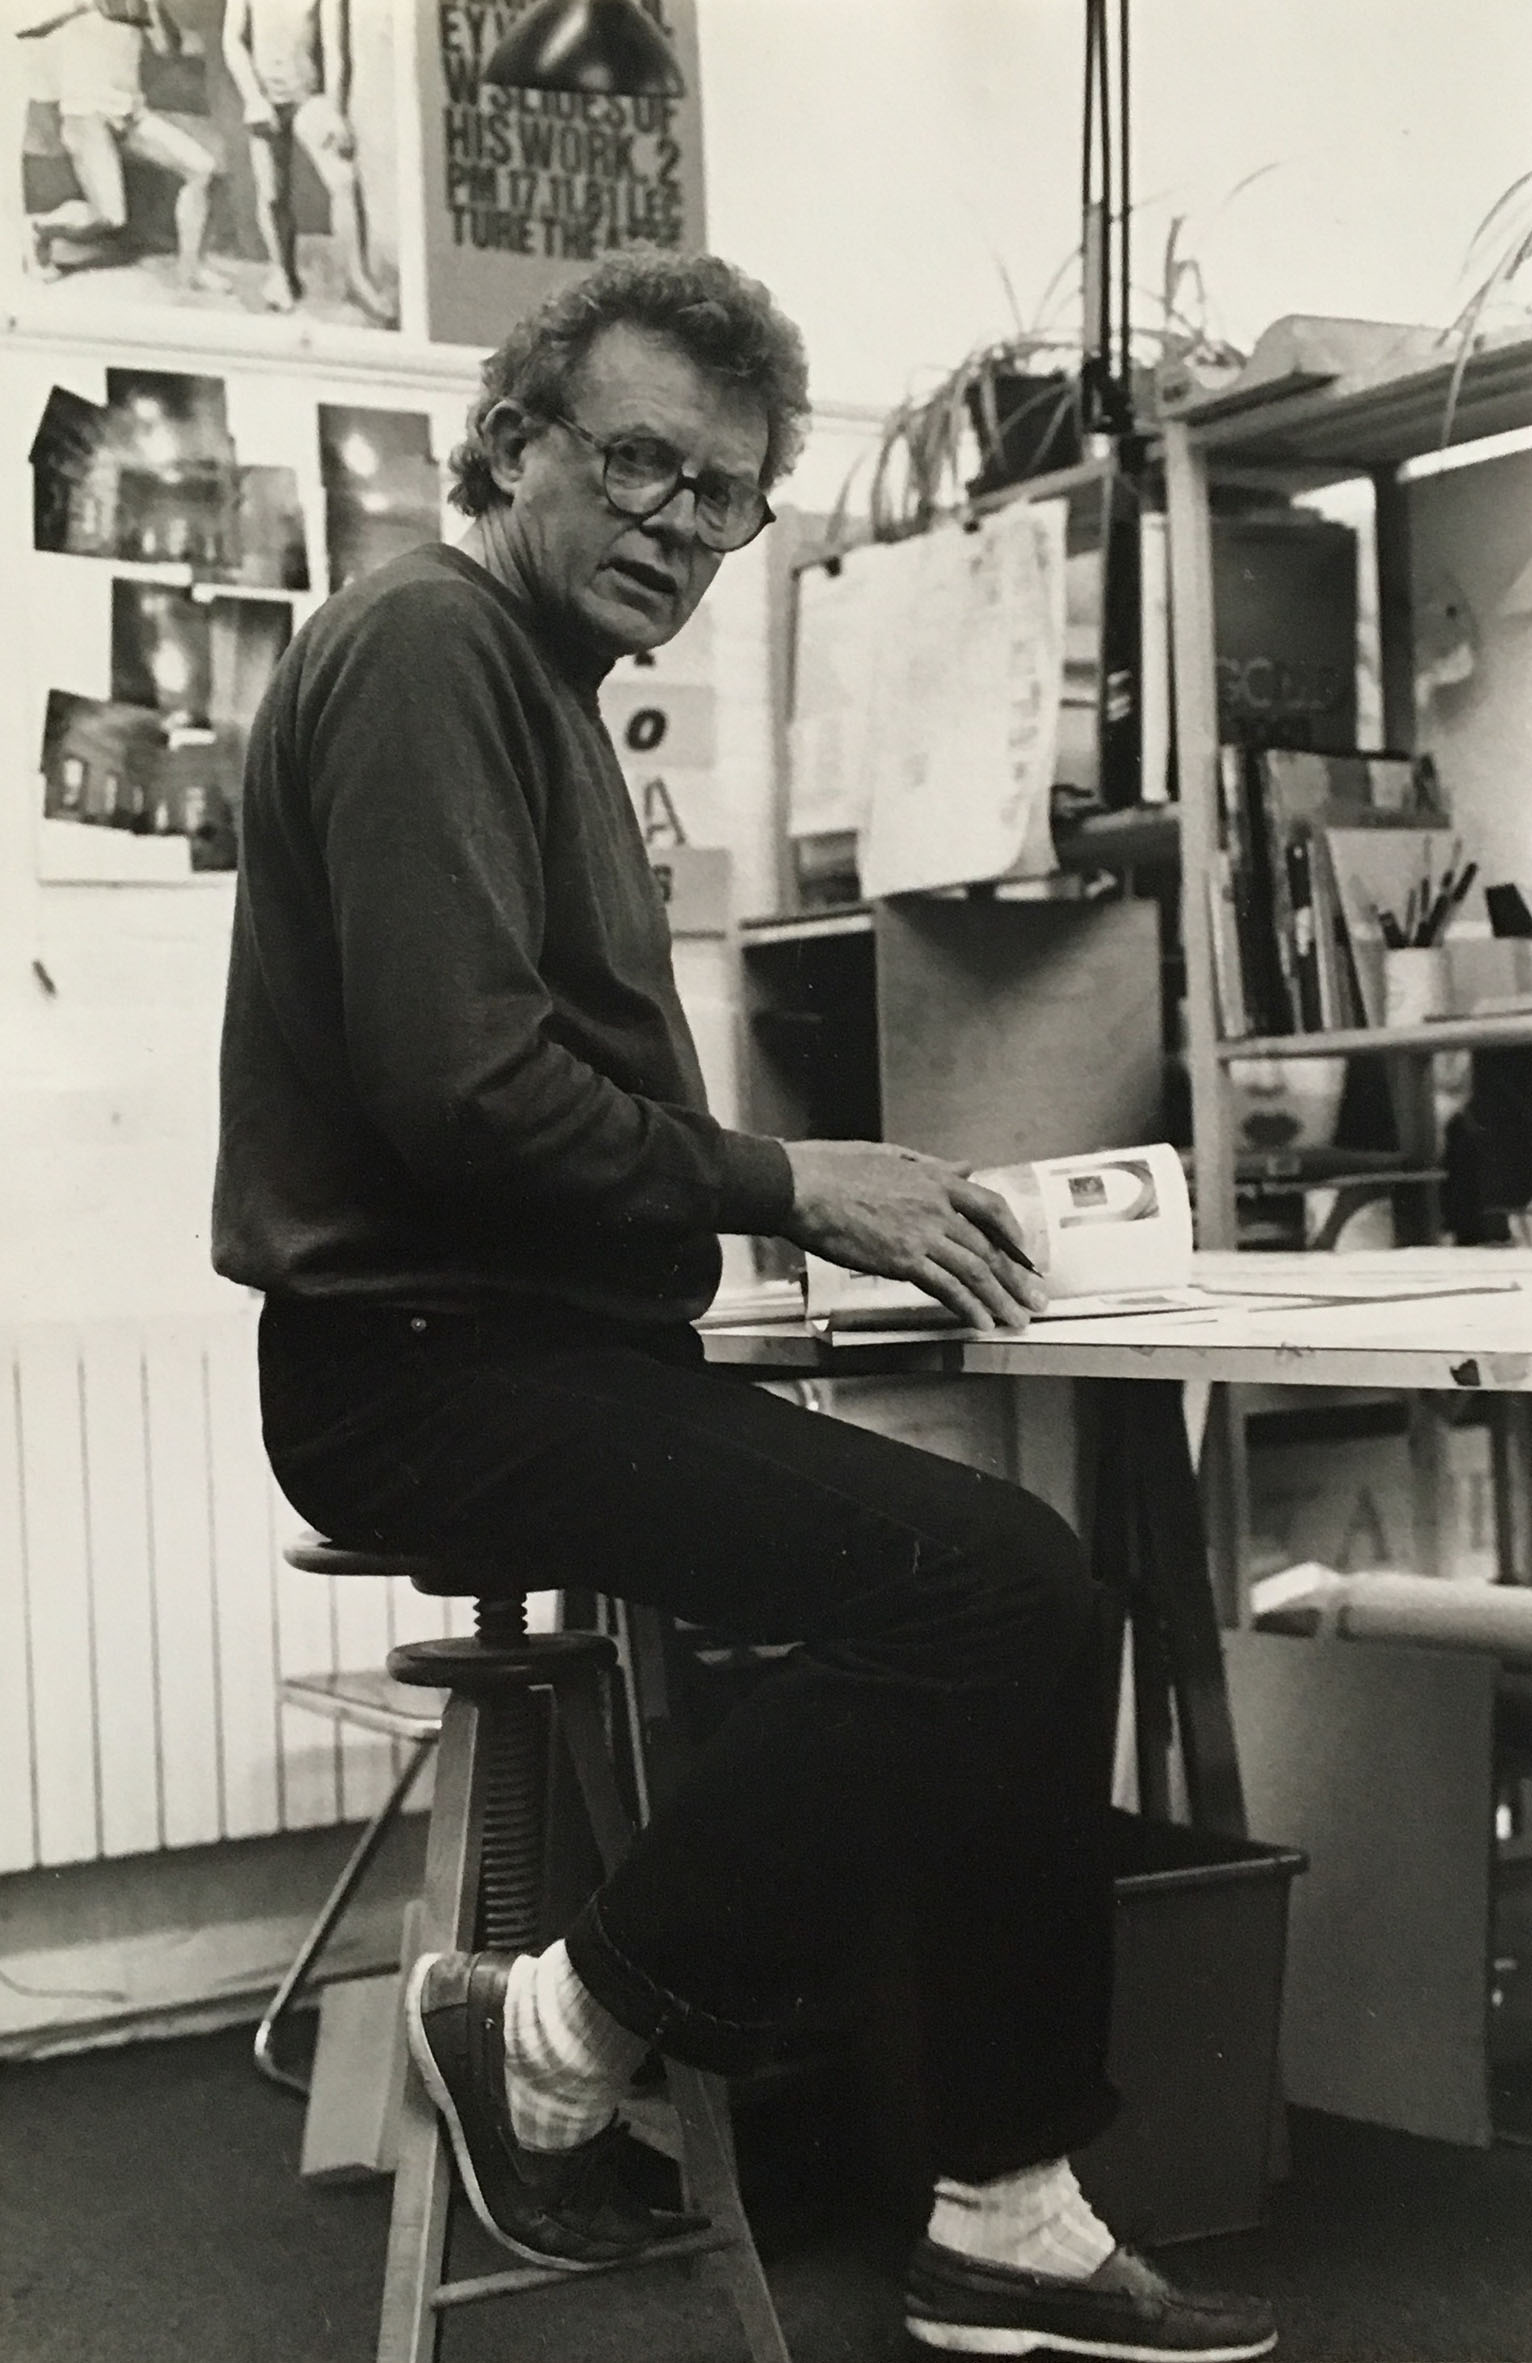 Bailey at work in 1986